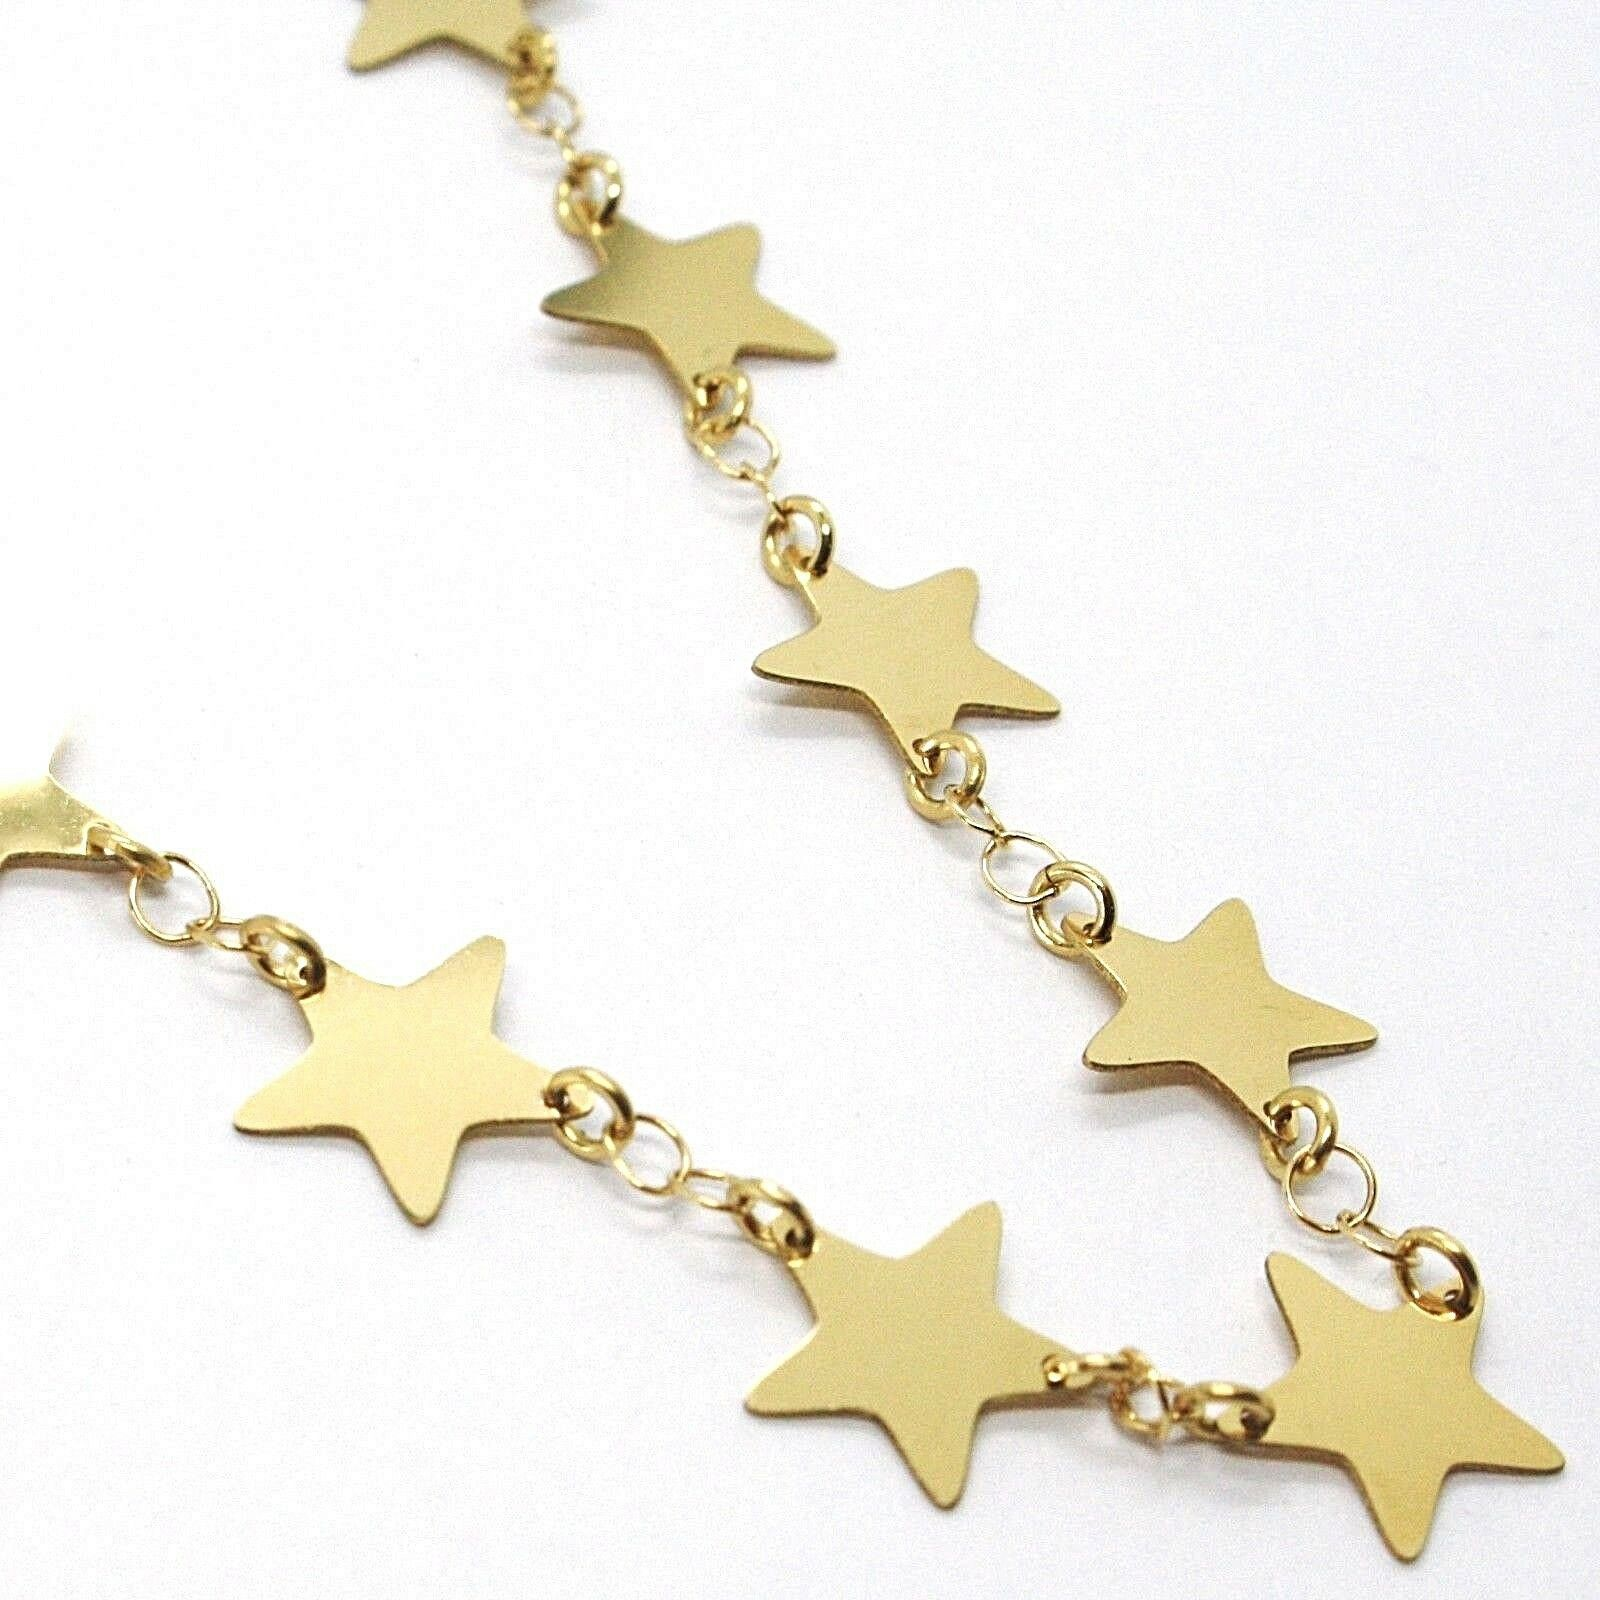 18K YELLOW GOLD NECKLACE, FLAT STARS, STAR, 16 INCHES, MADE IN ITALY